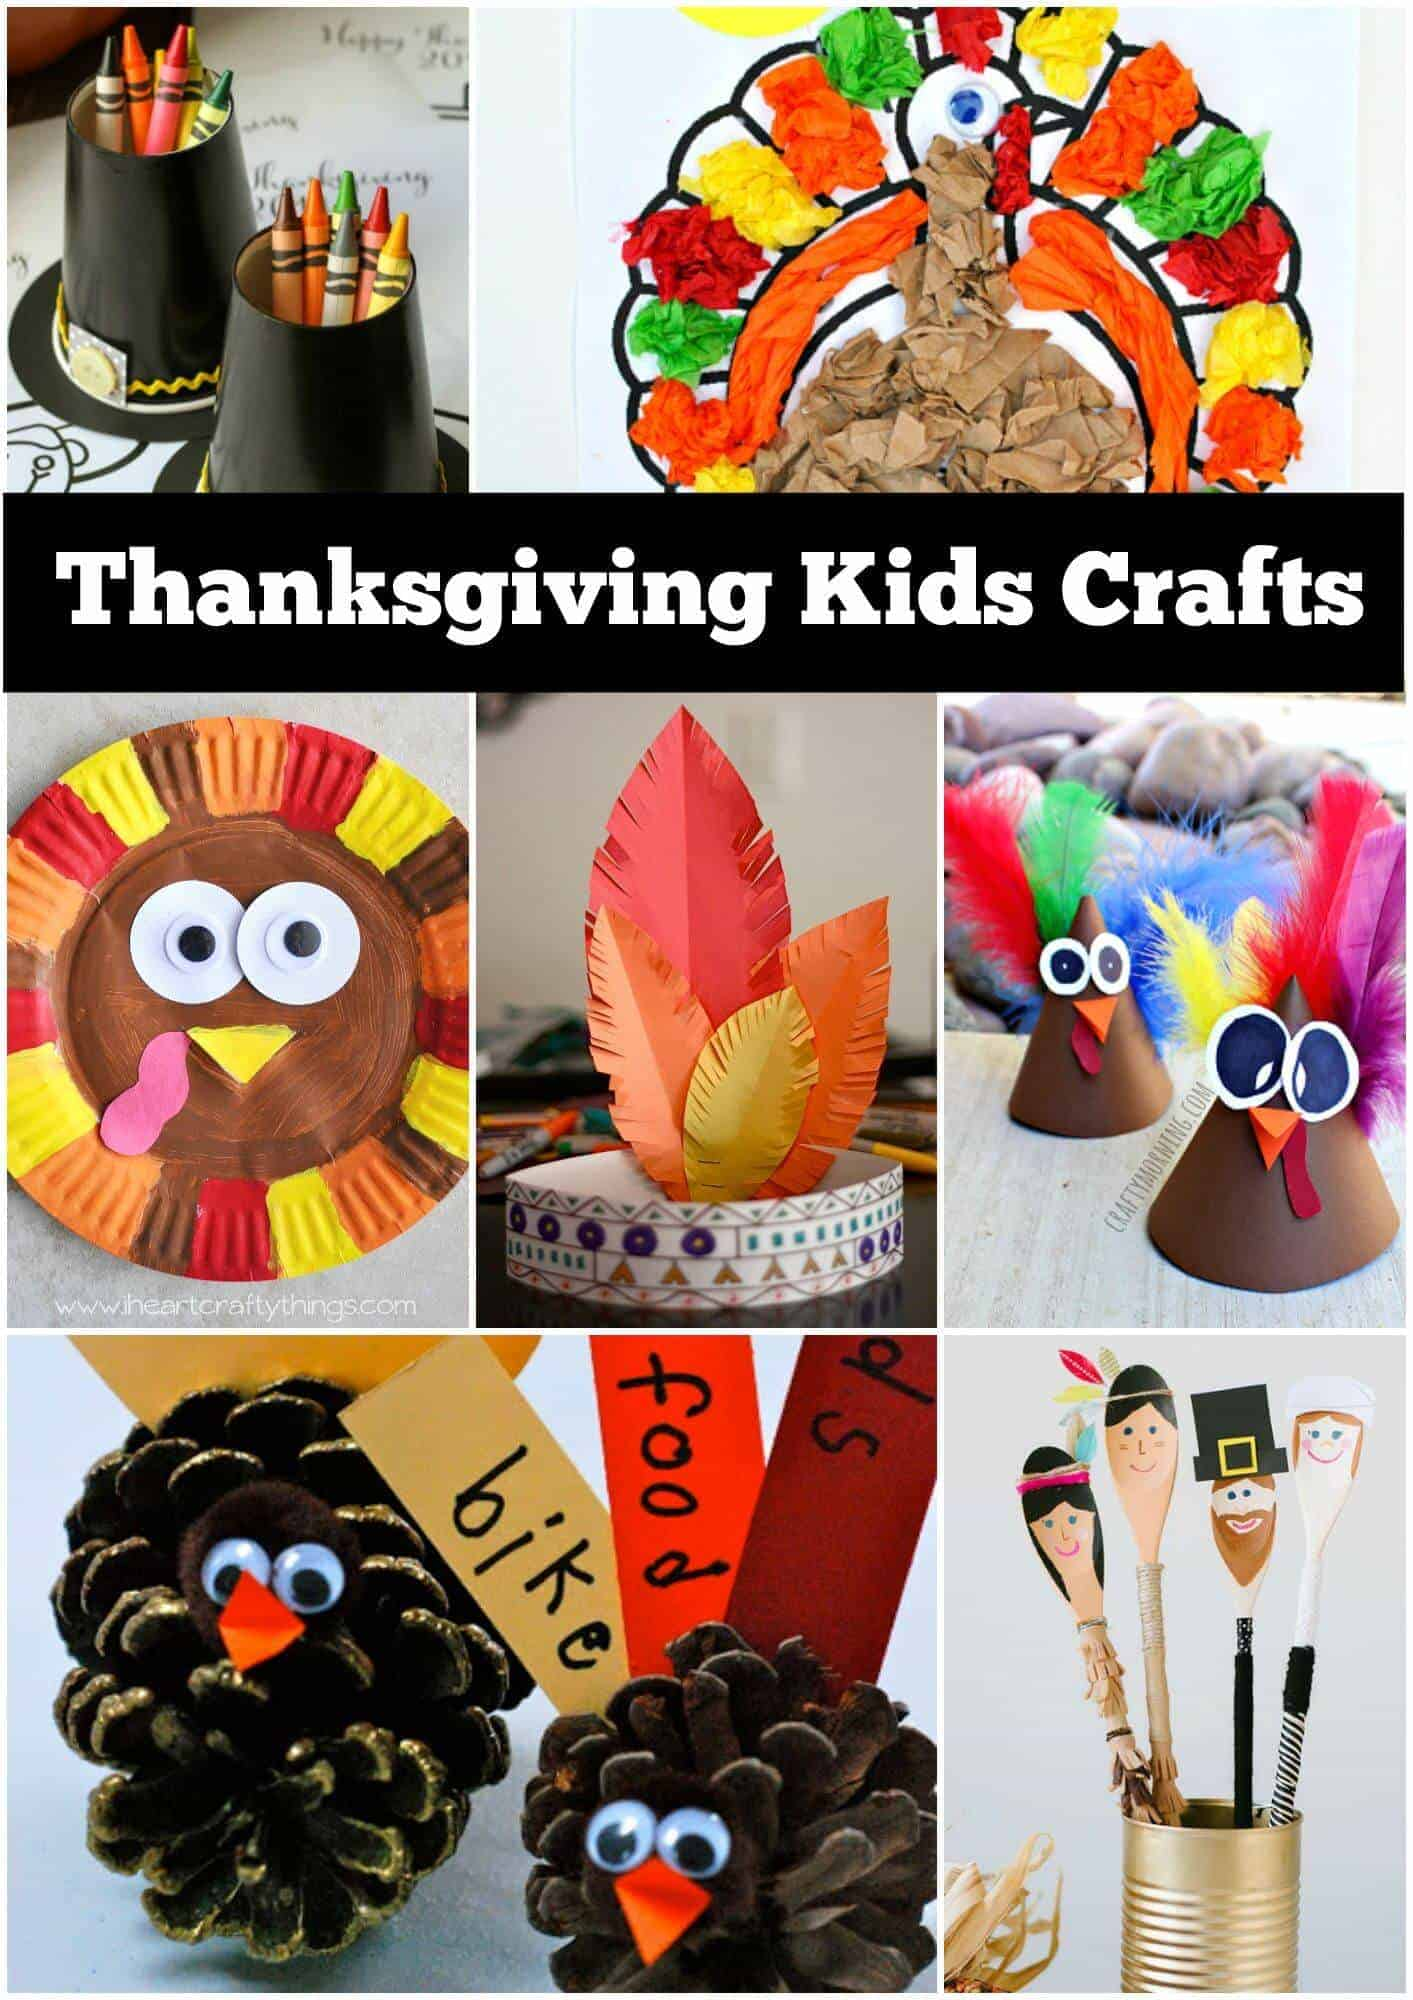 12 thanksgiving craft ideas for kids page 2 of 2